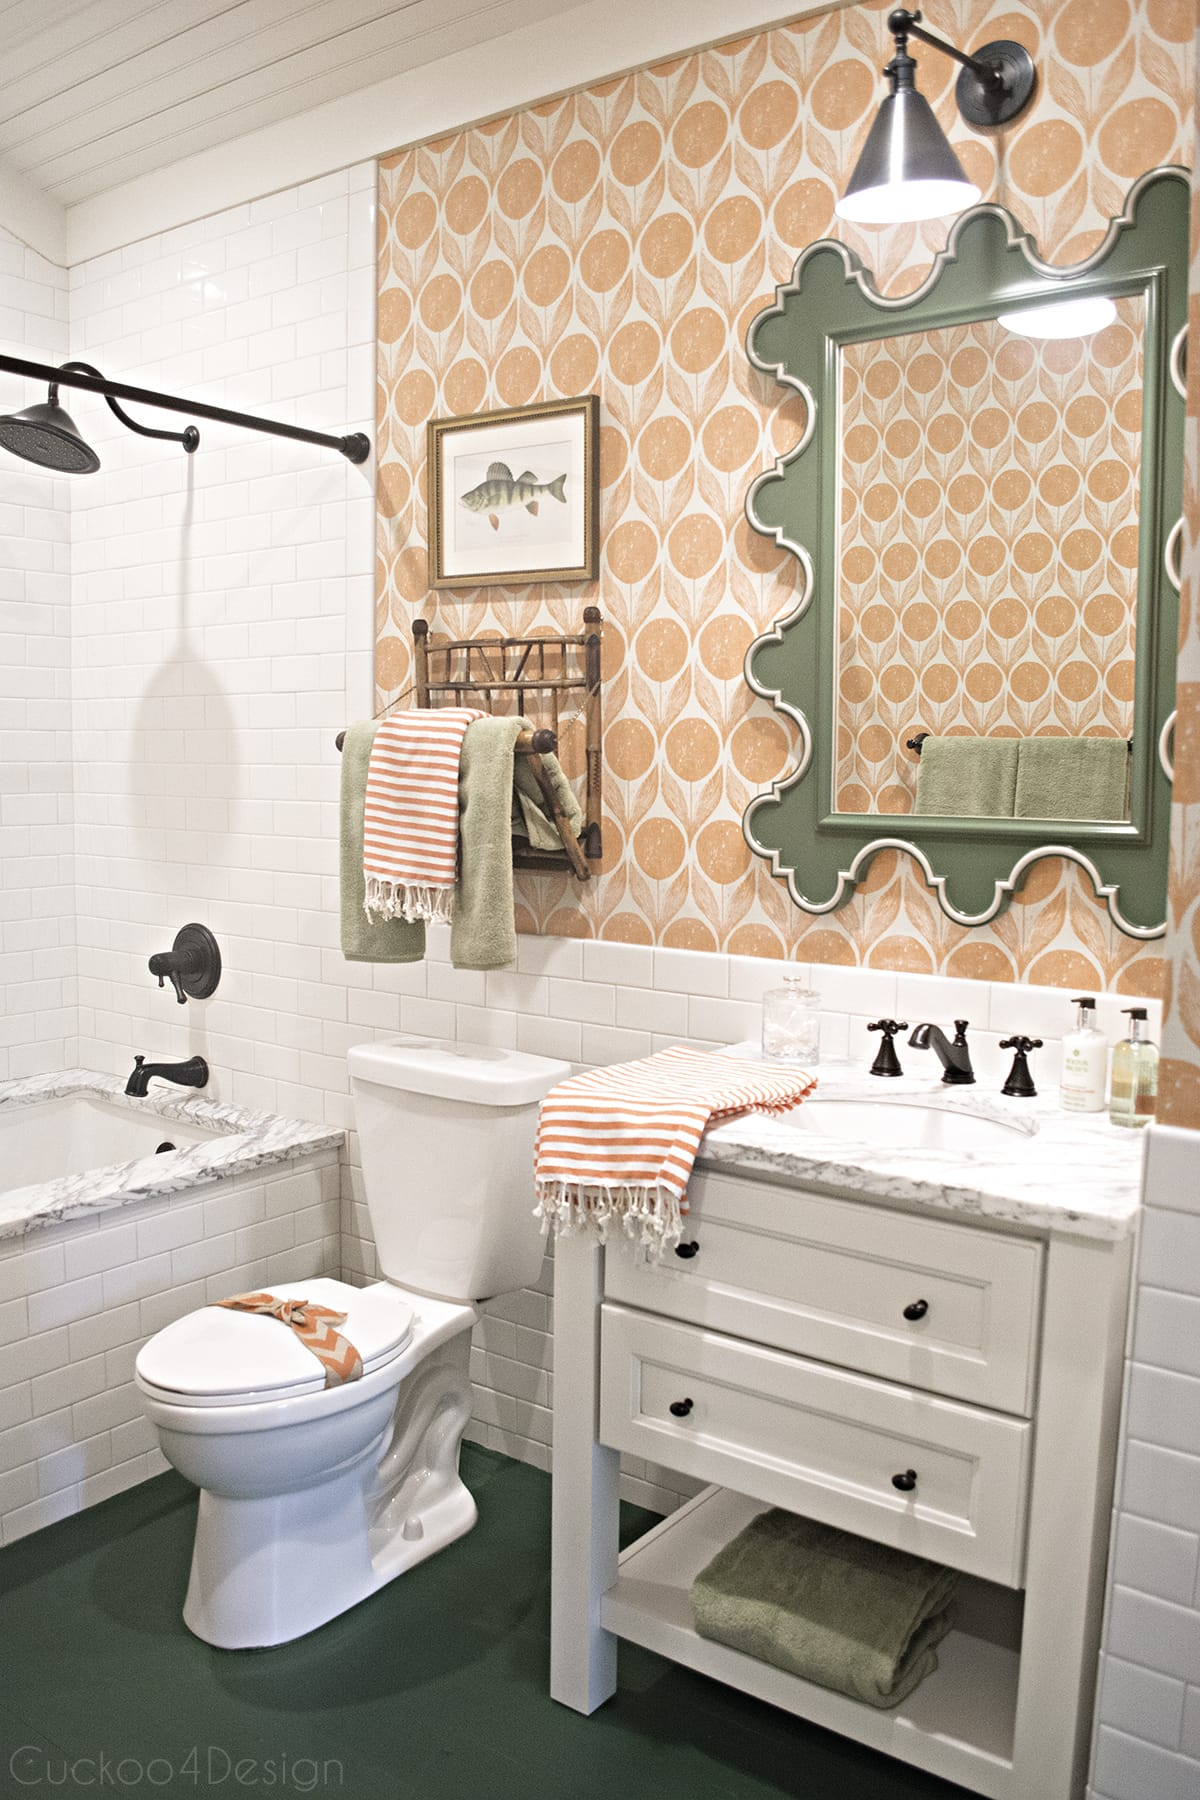 Romo Clementine wallpaper, green scalloped mirror with orange wallpaper and @deltafaucet fixtures in bathroom